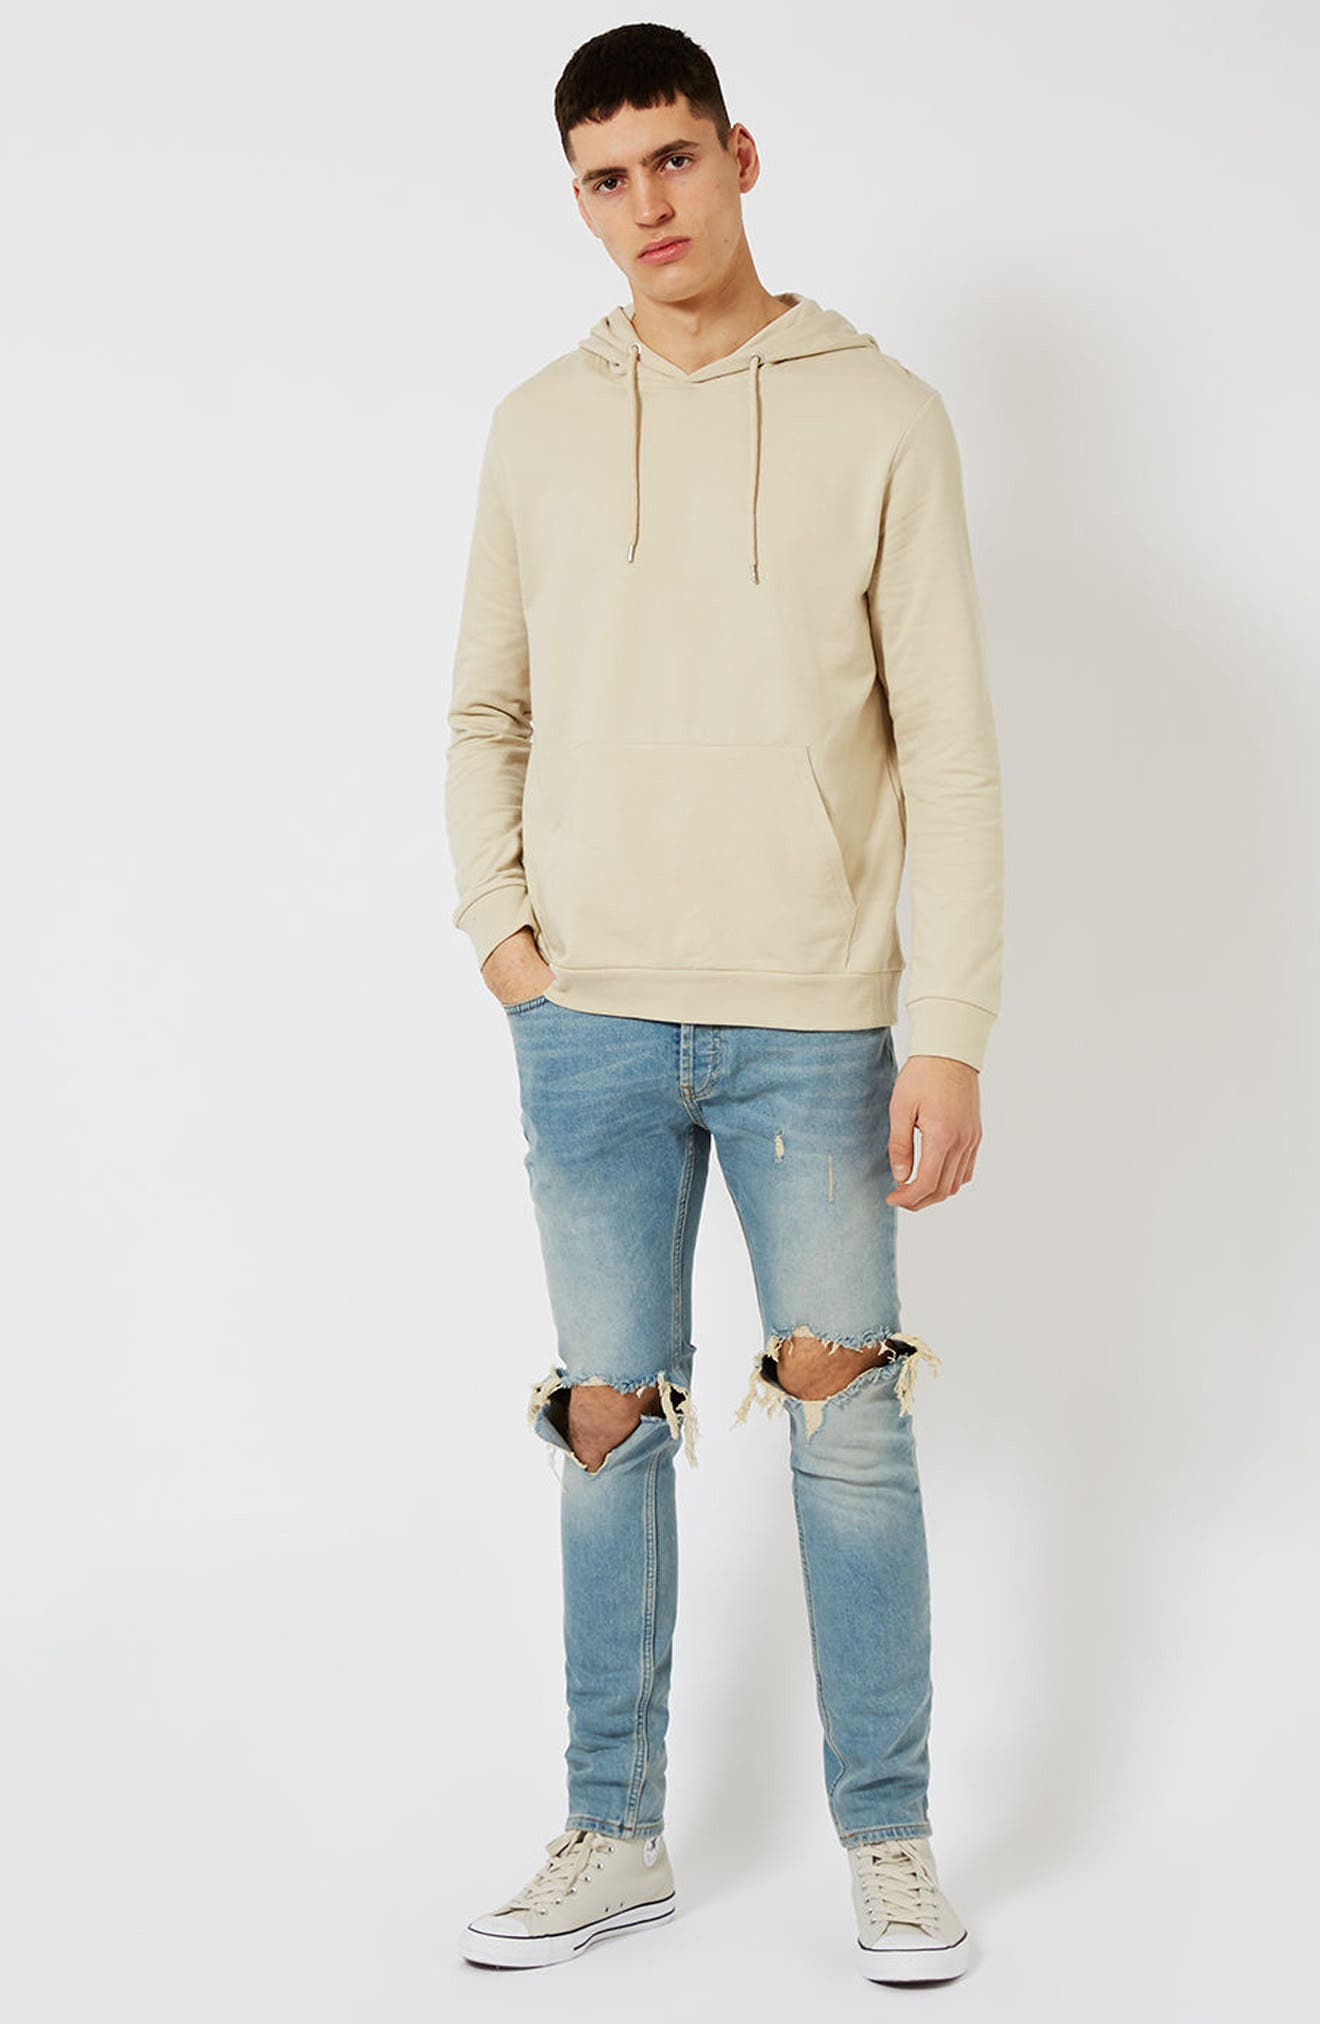 TOPMAN, Ripped Stretch Skinny Jeans, Alternate thumbnail 9, color, LIGHT WASH DENIM